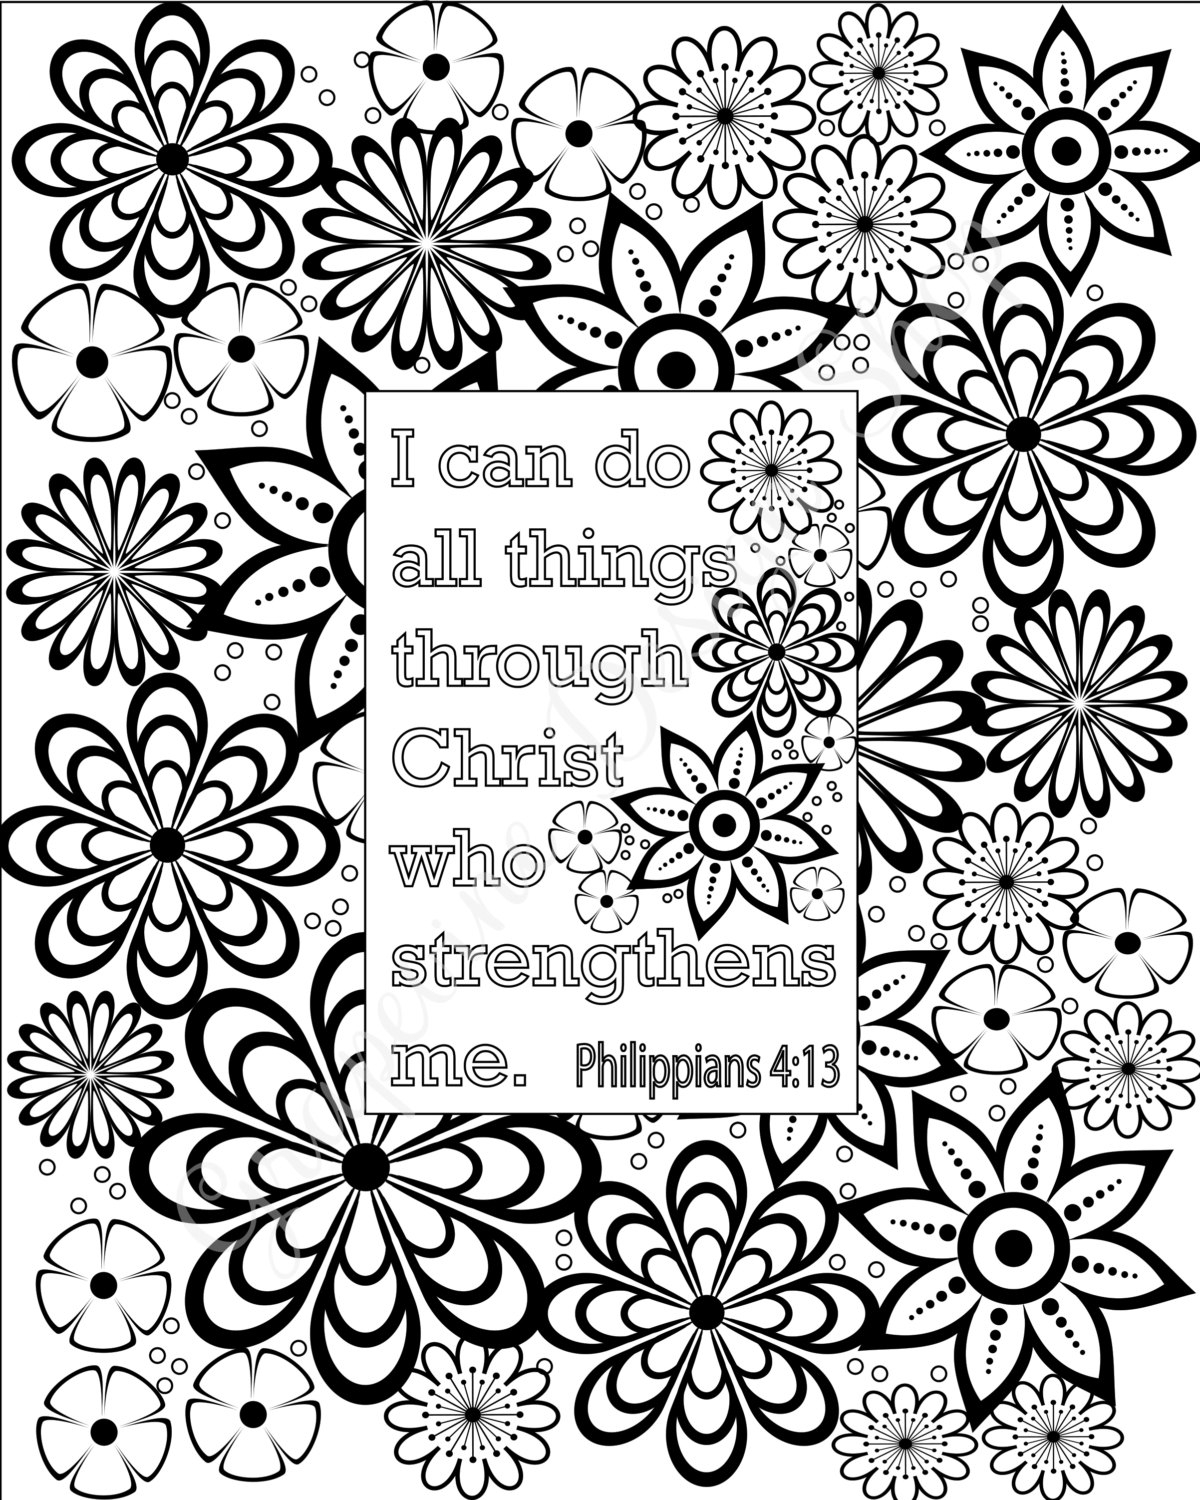 coloring bible verses for kids pin on coloring pages bible kids verses coloring for